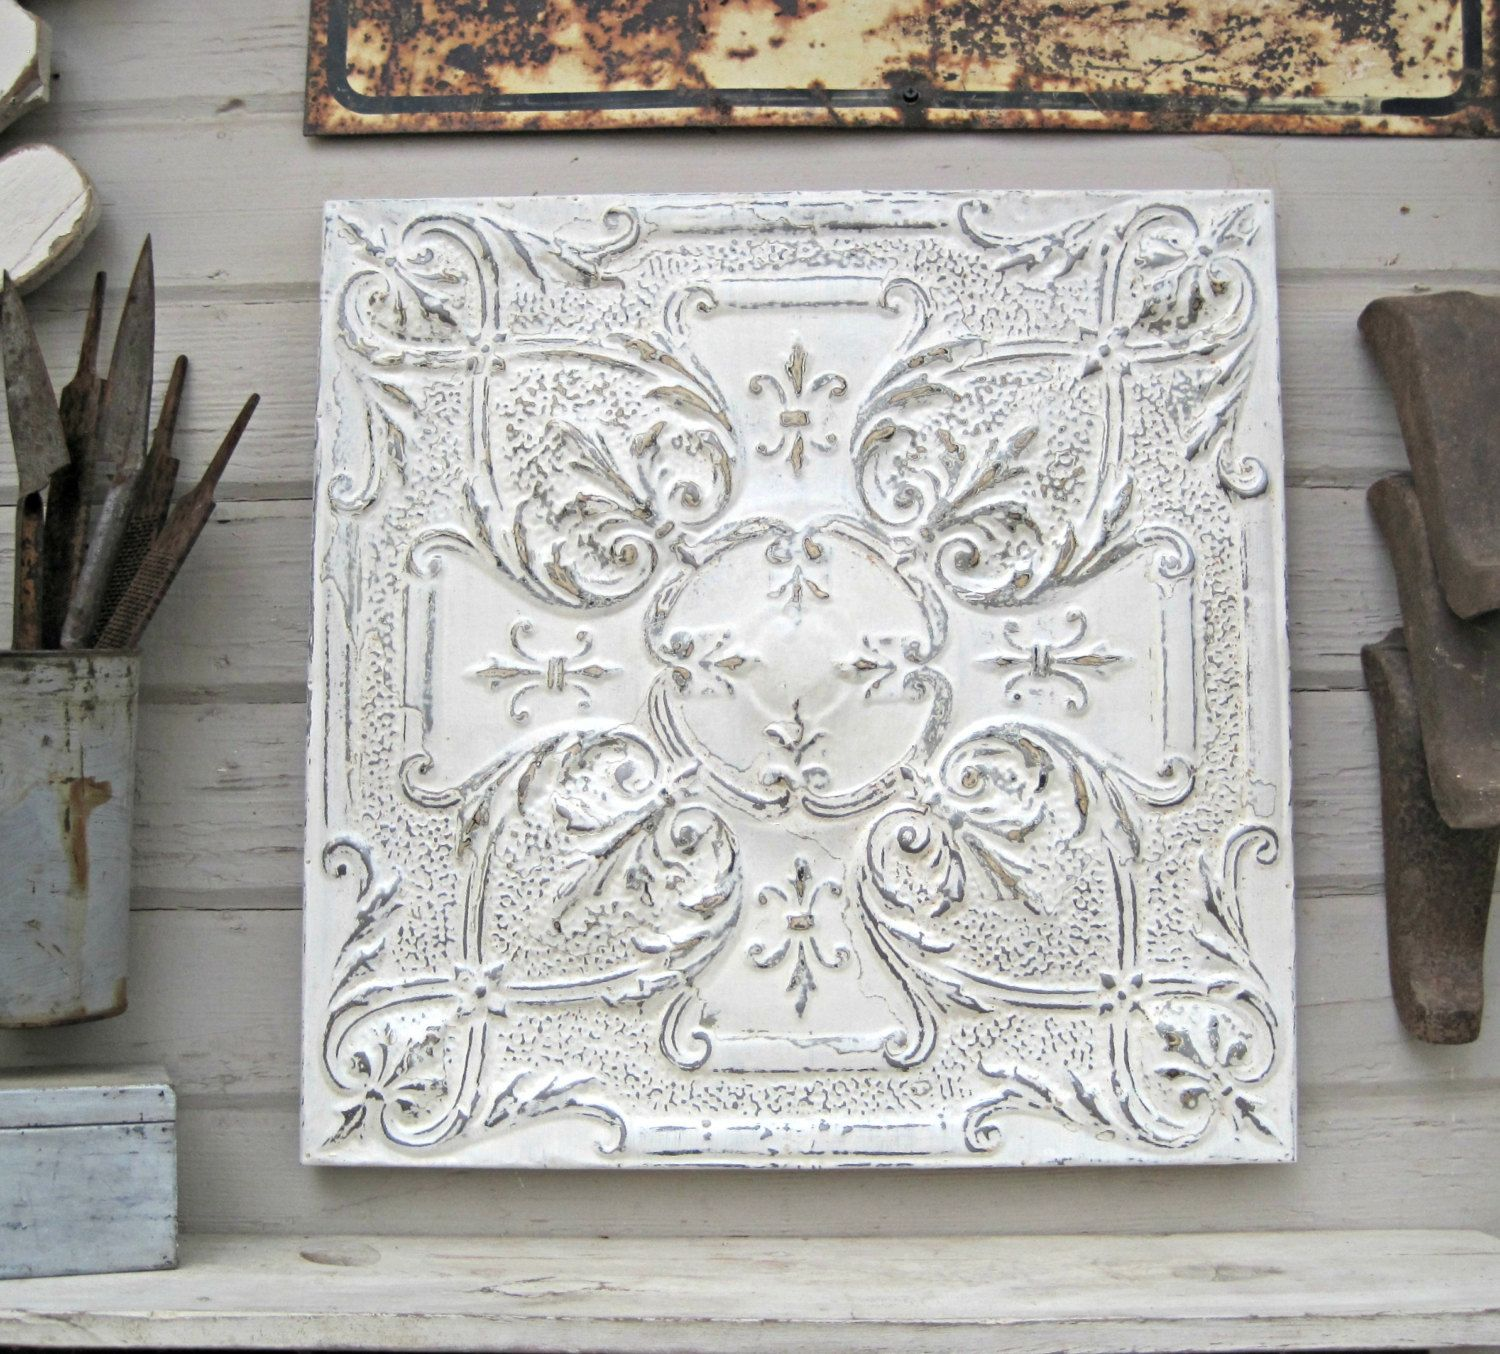 Antique tin ceiling tile 10th tin anniversary gift old metal antique tin ceiling tile 10th tin anniversary gift old metal tile antique architectural dailygadgetfo Gallery